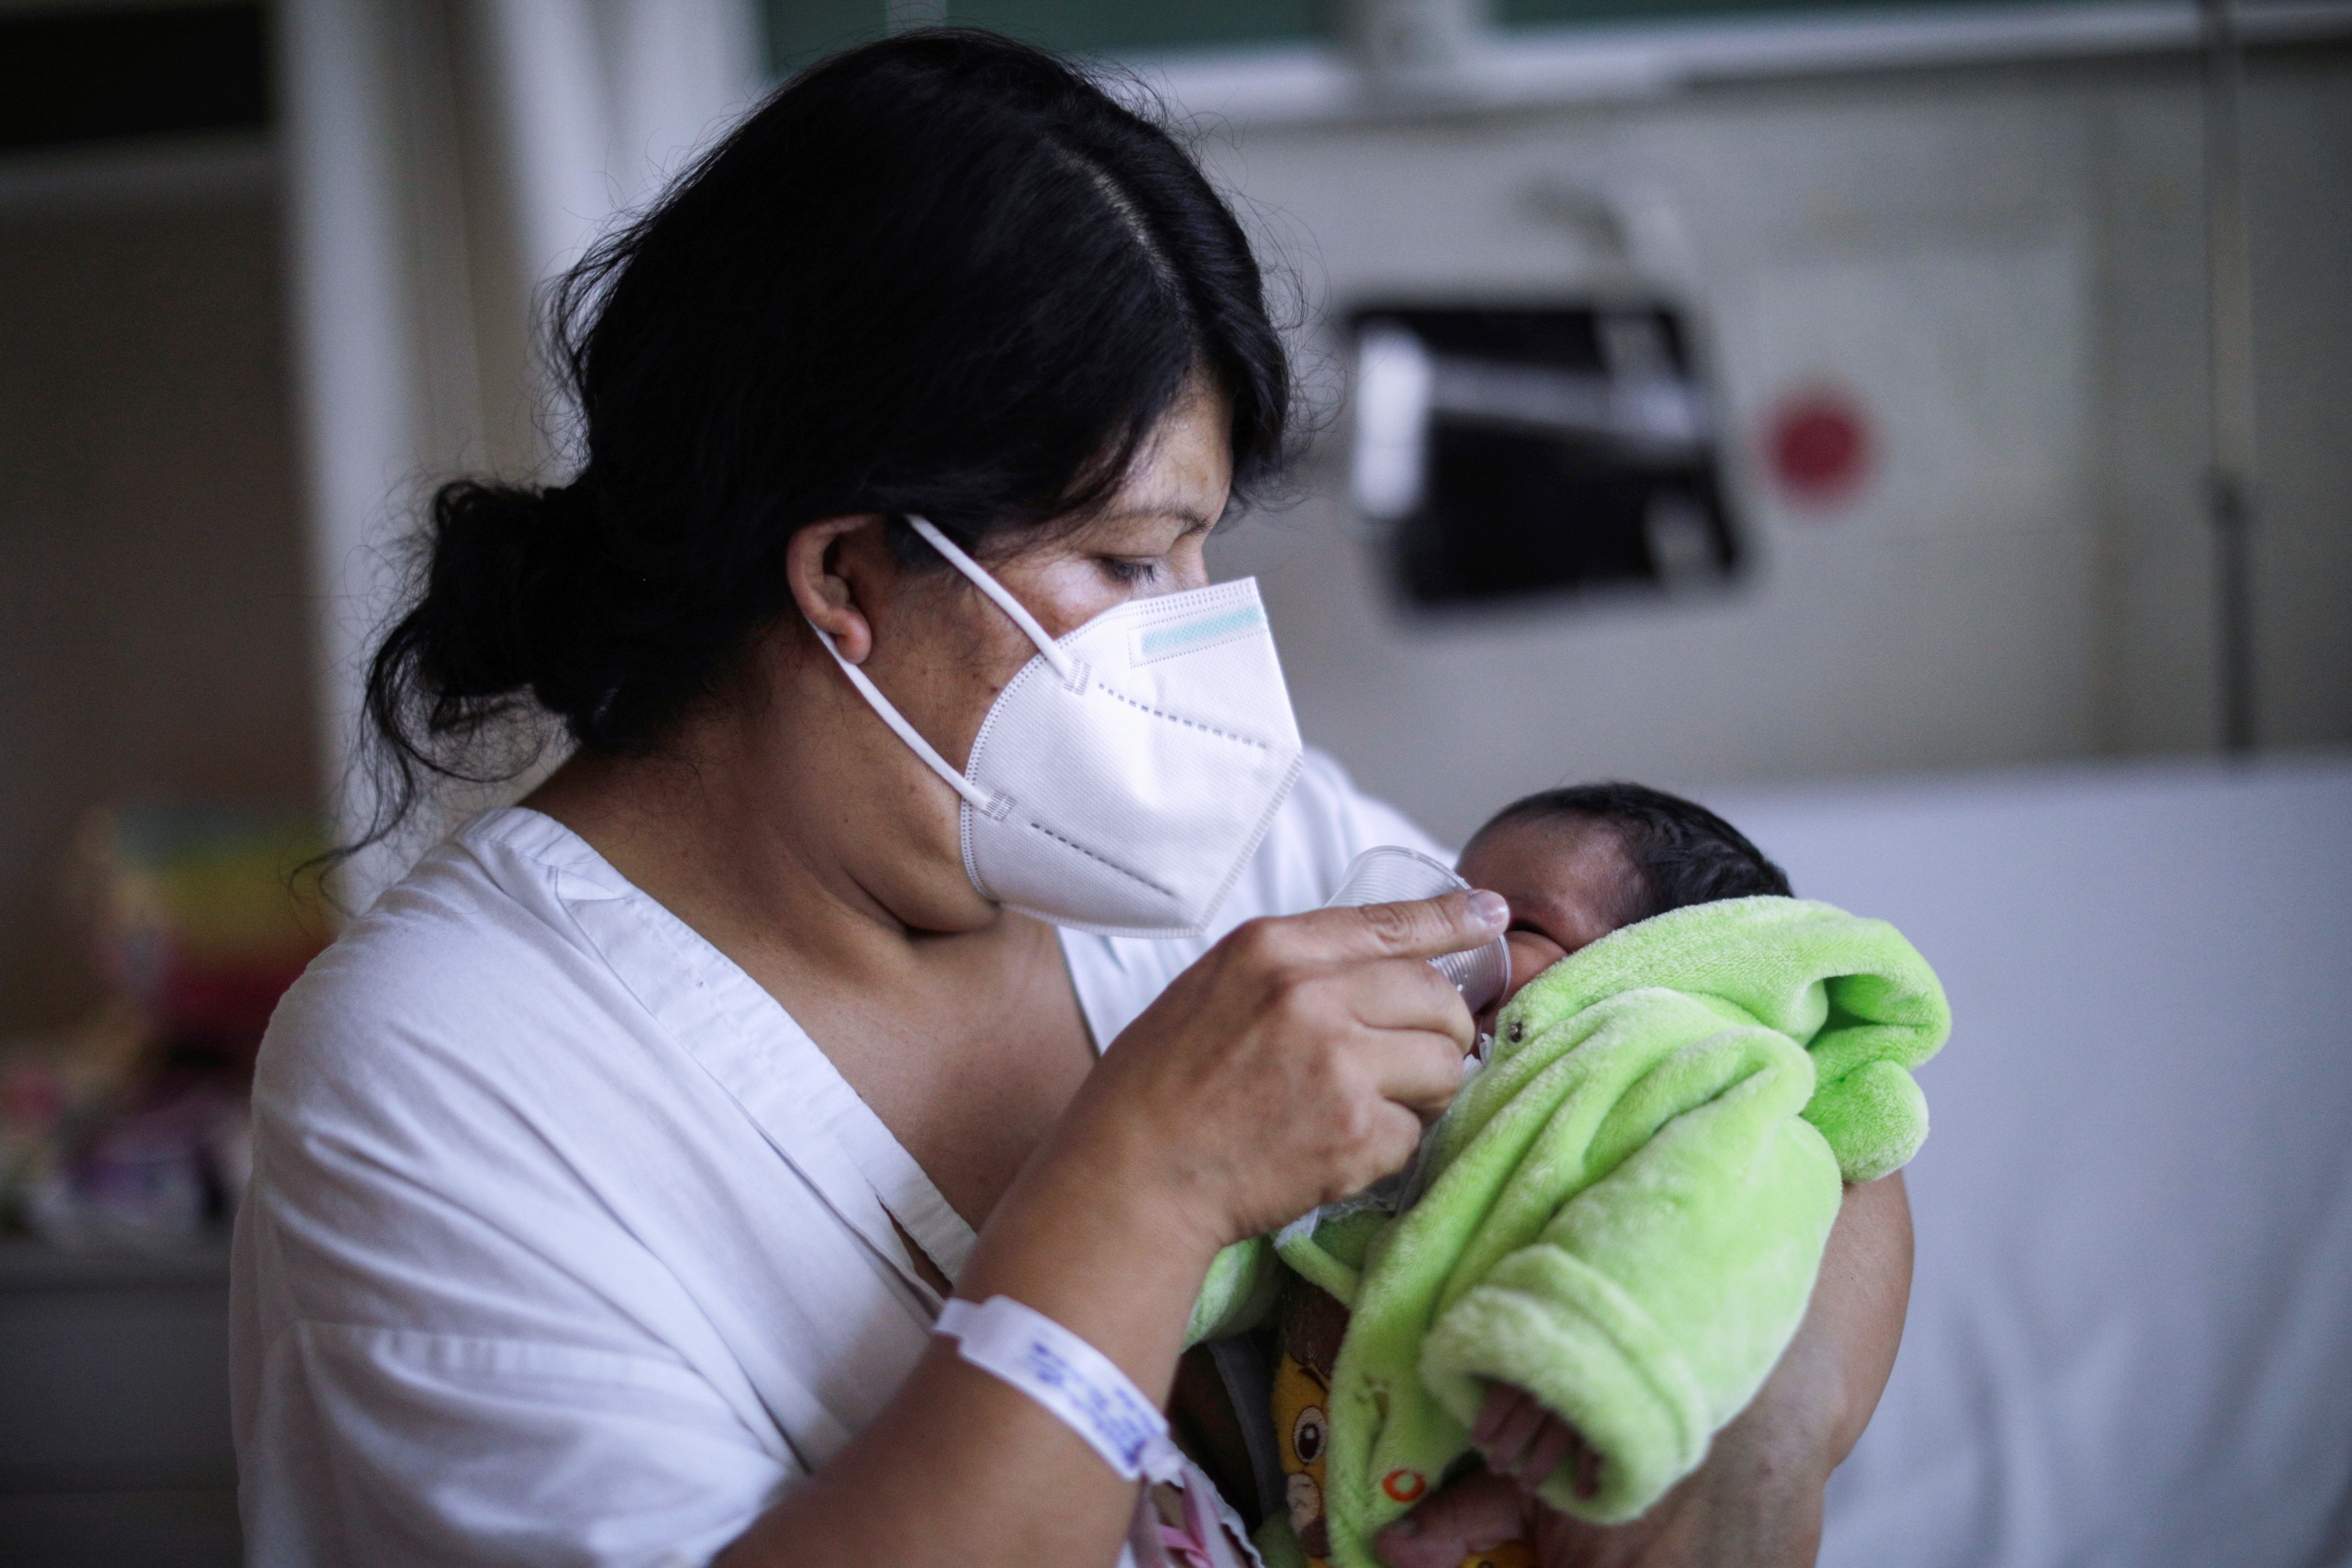 A woman infected with the coronavirus disease (COVID-19) carries her baby at the maternity ward for mothers infected with the coronavirus, at the Maternal Perinatal Hospital 'Monica Pretelini Saenz', in Toluca, Mexico February 4, 2021. REUTERS/Luis Cortes - RC22ML93Y8ZP